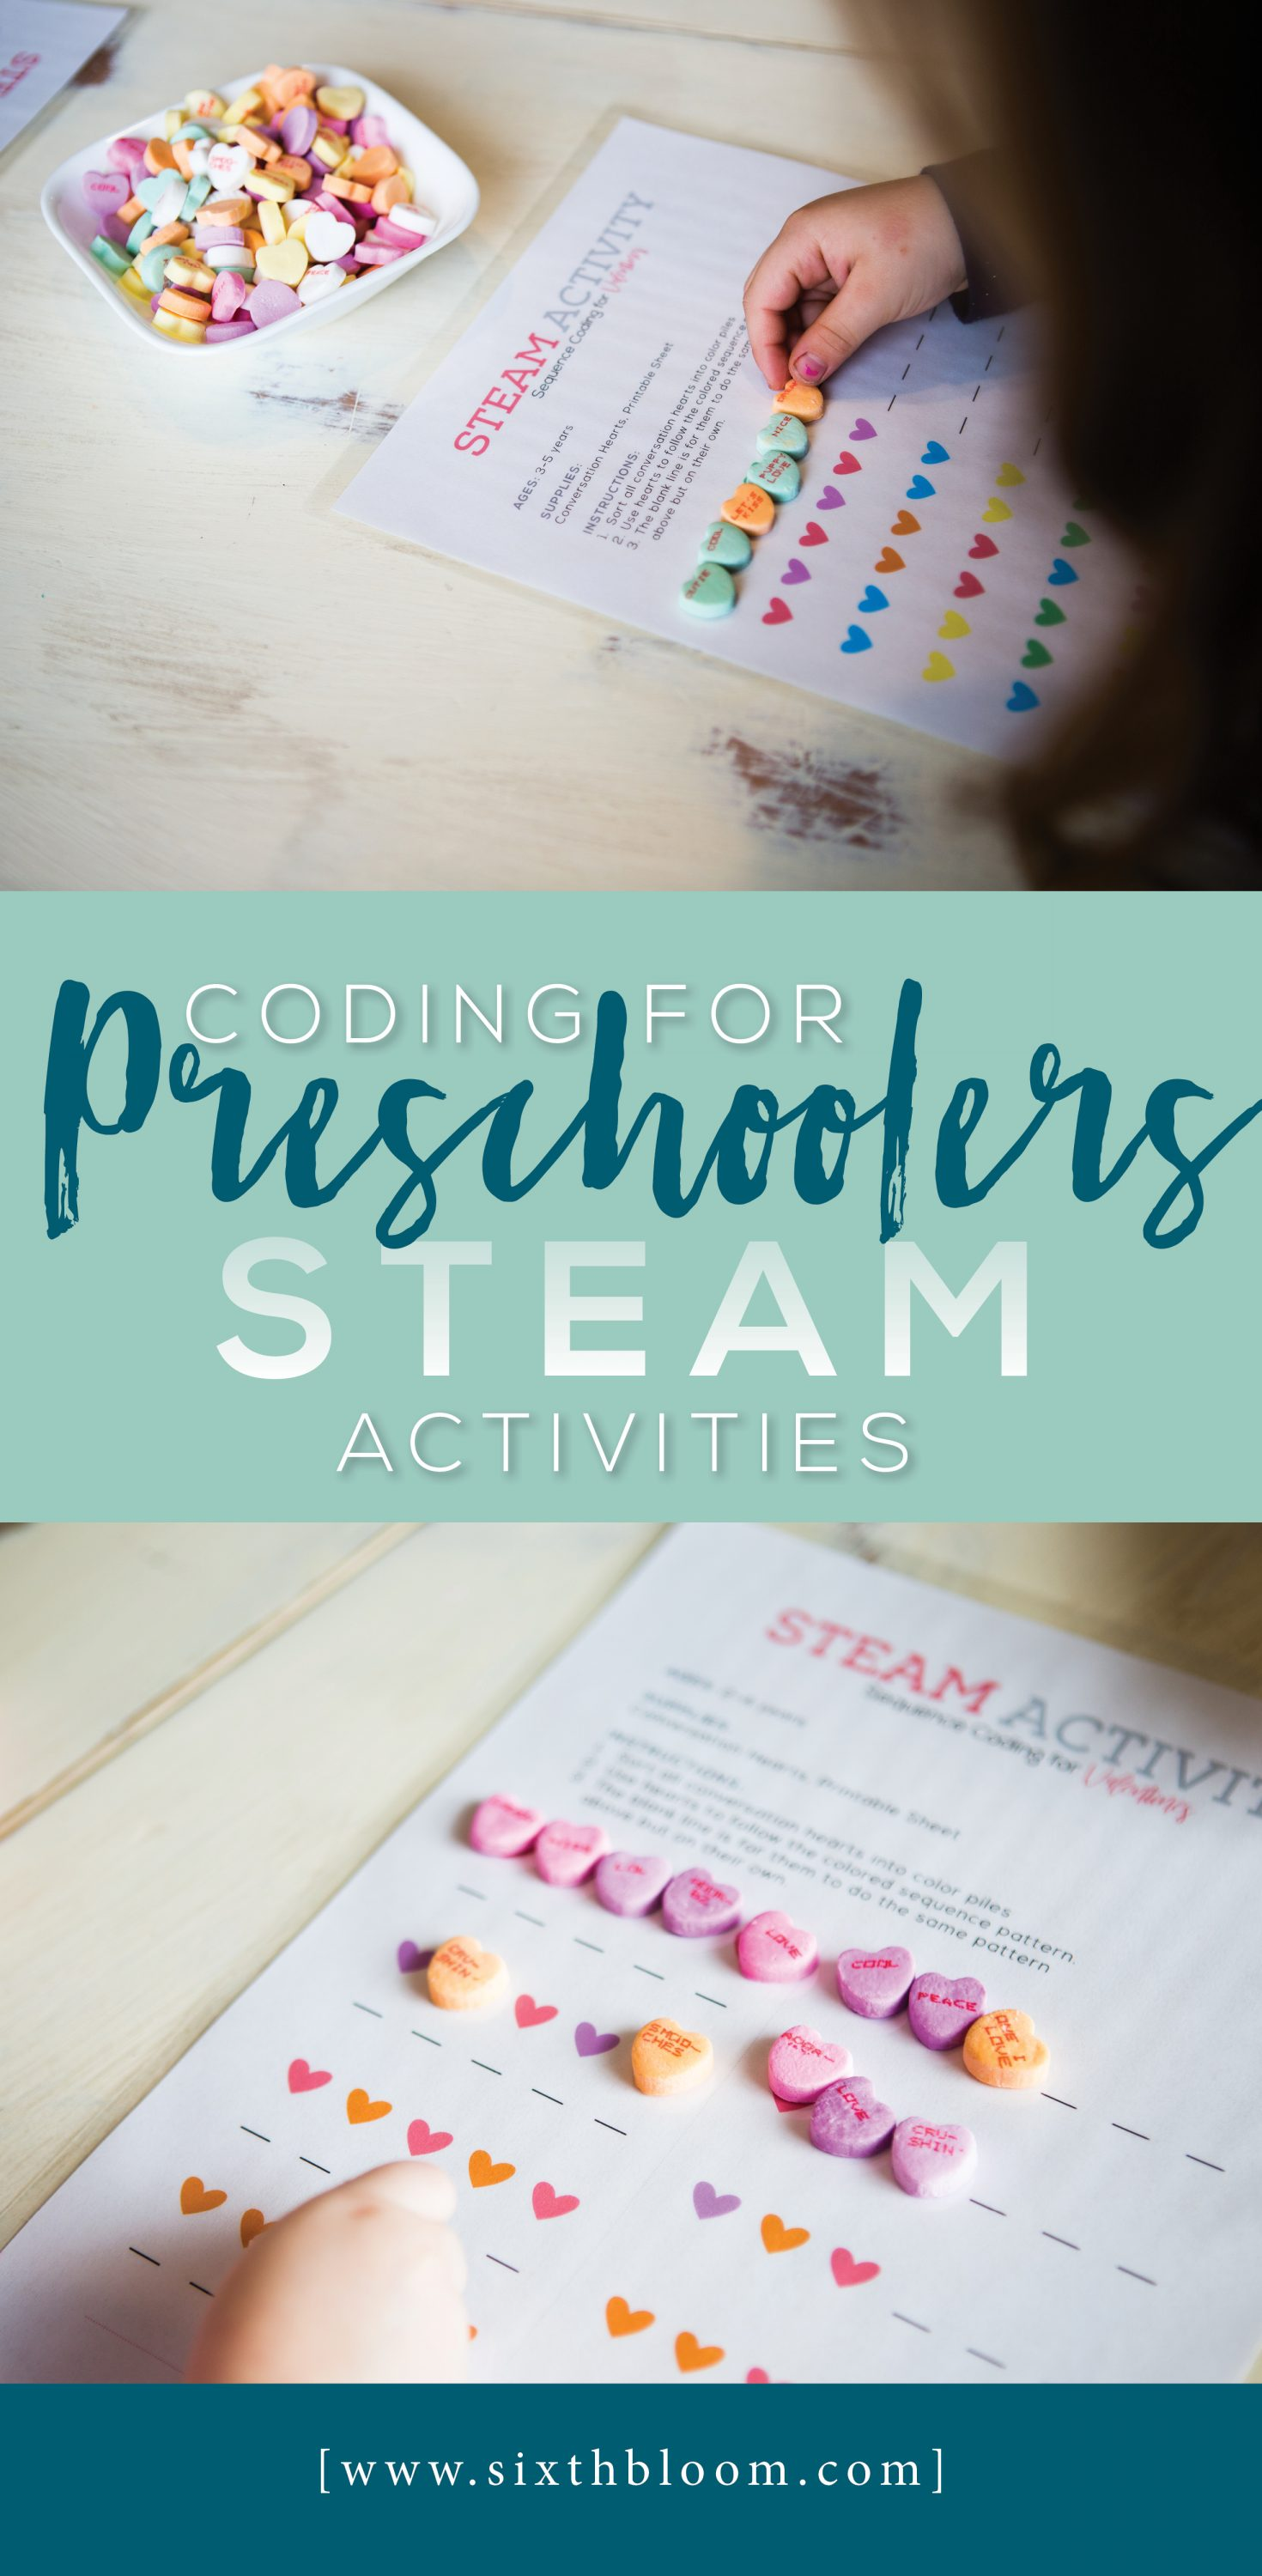 Coding For Preschoolers Steam Activities